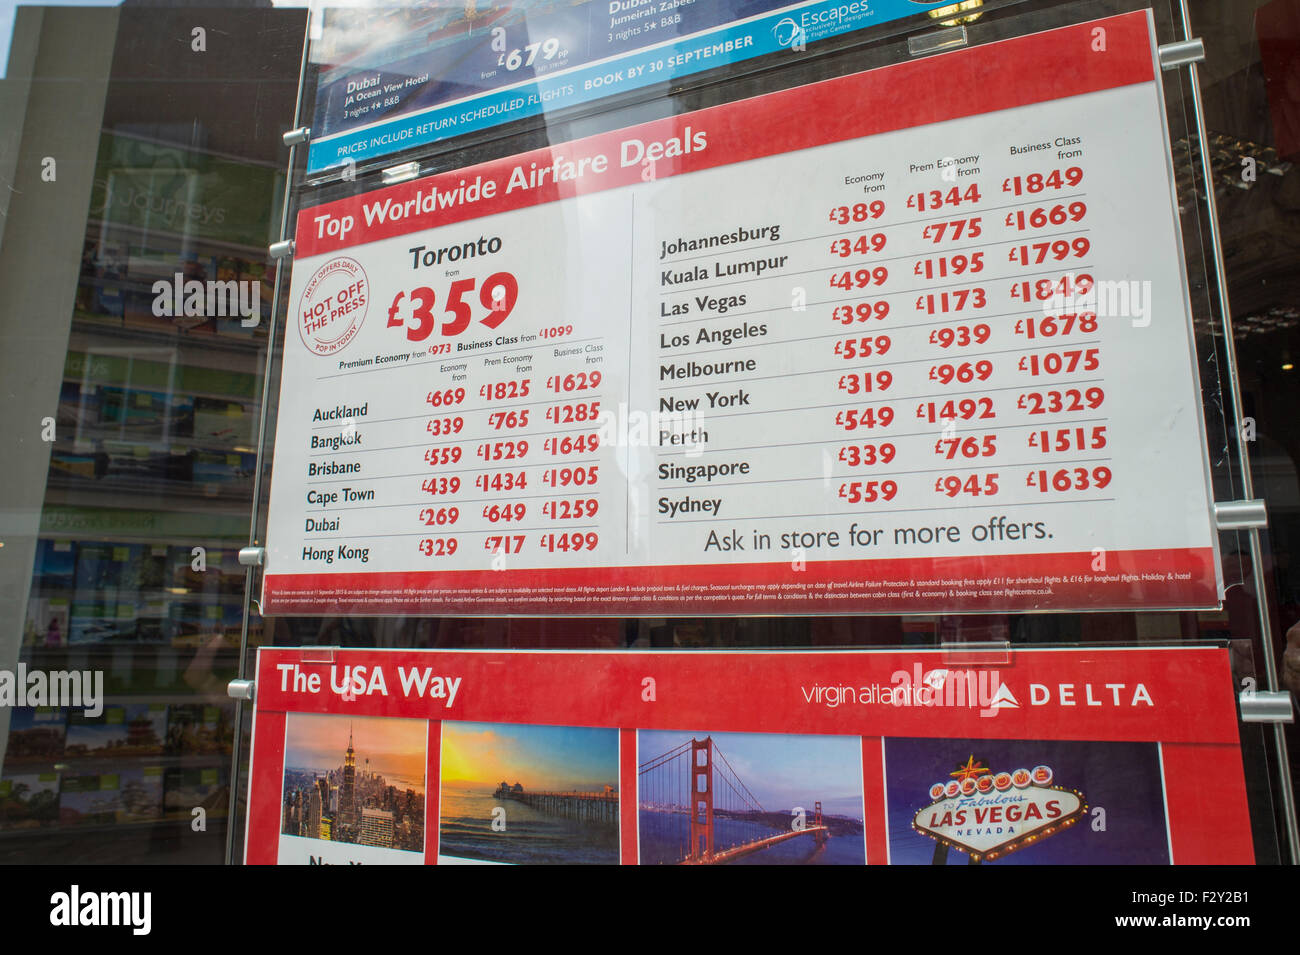 Travel agents window display with flights for sale. - Stock Image